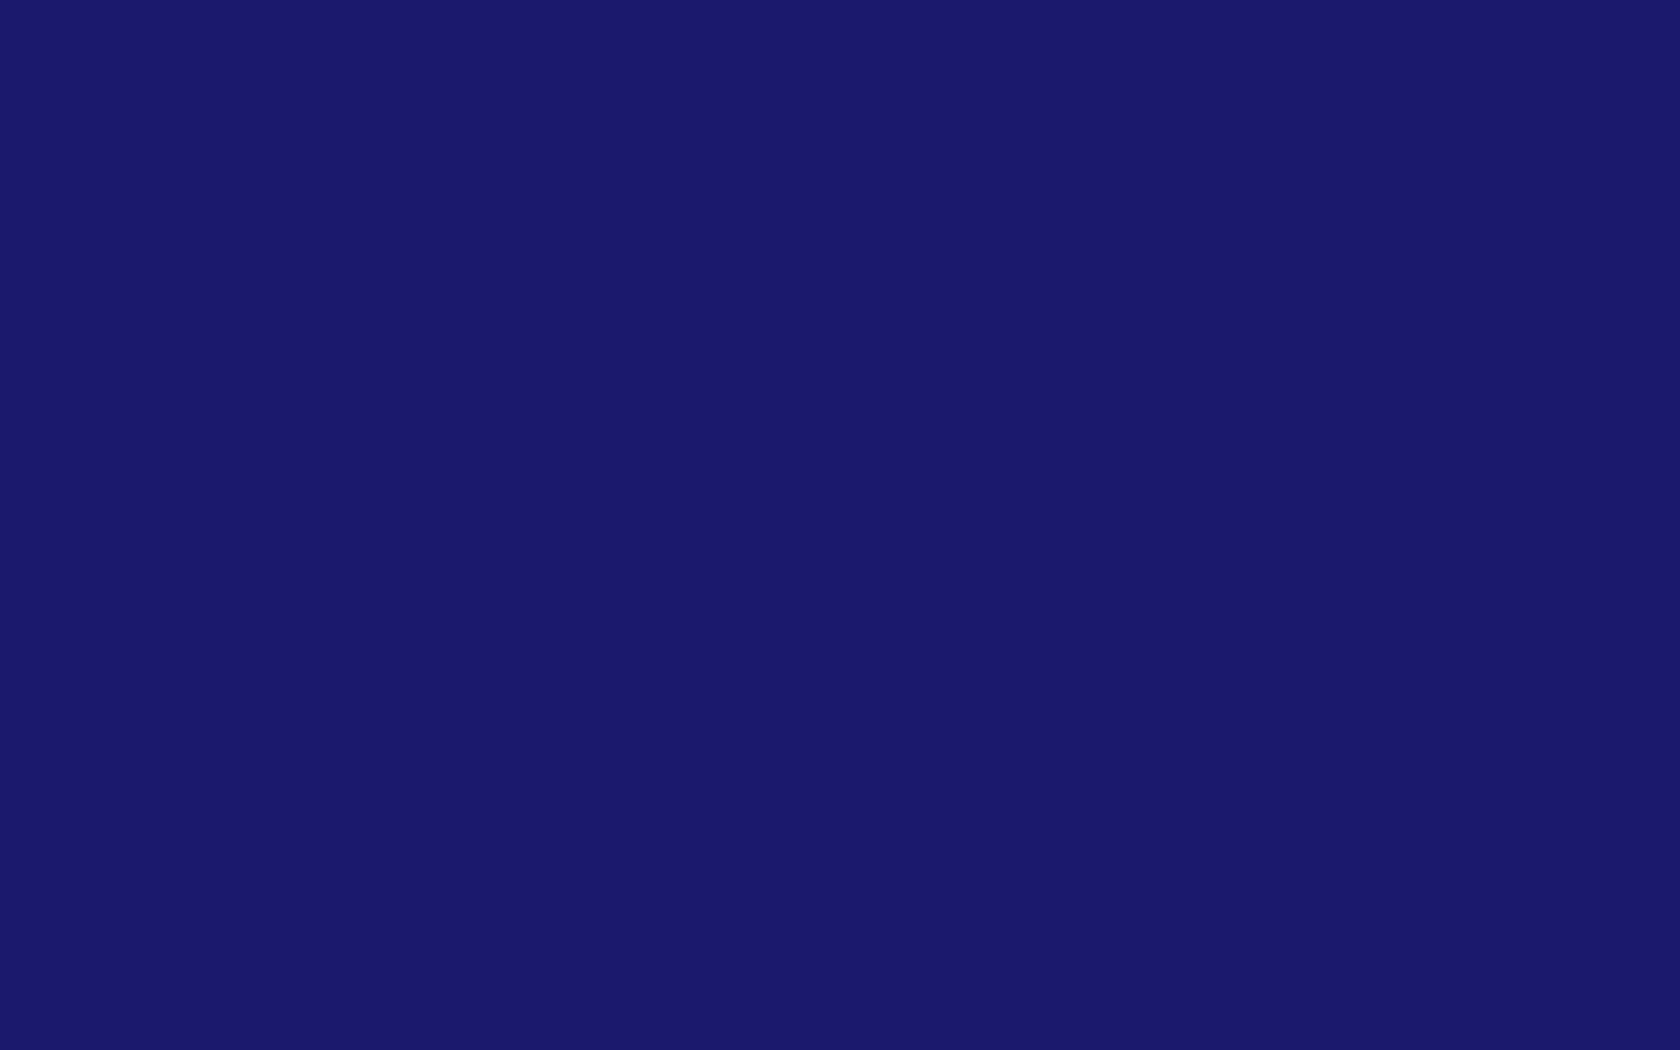 1680x1050 Midnight Blue Solid Color Background